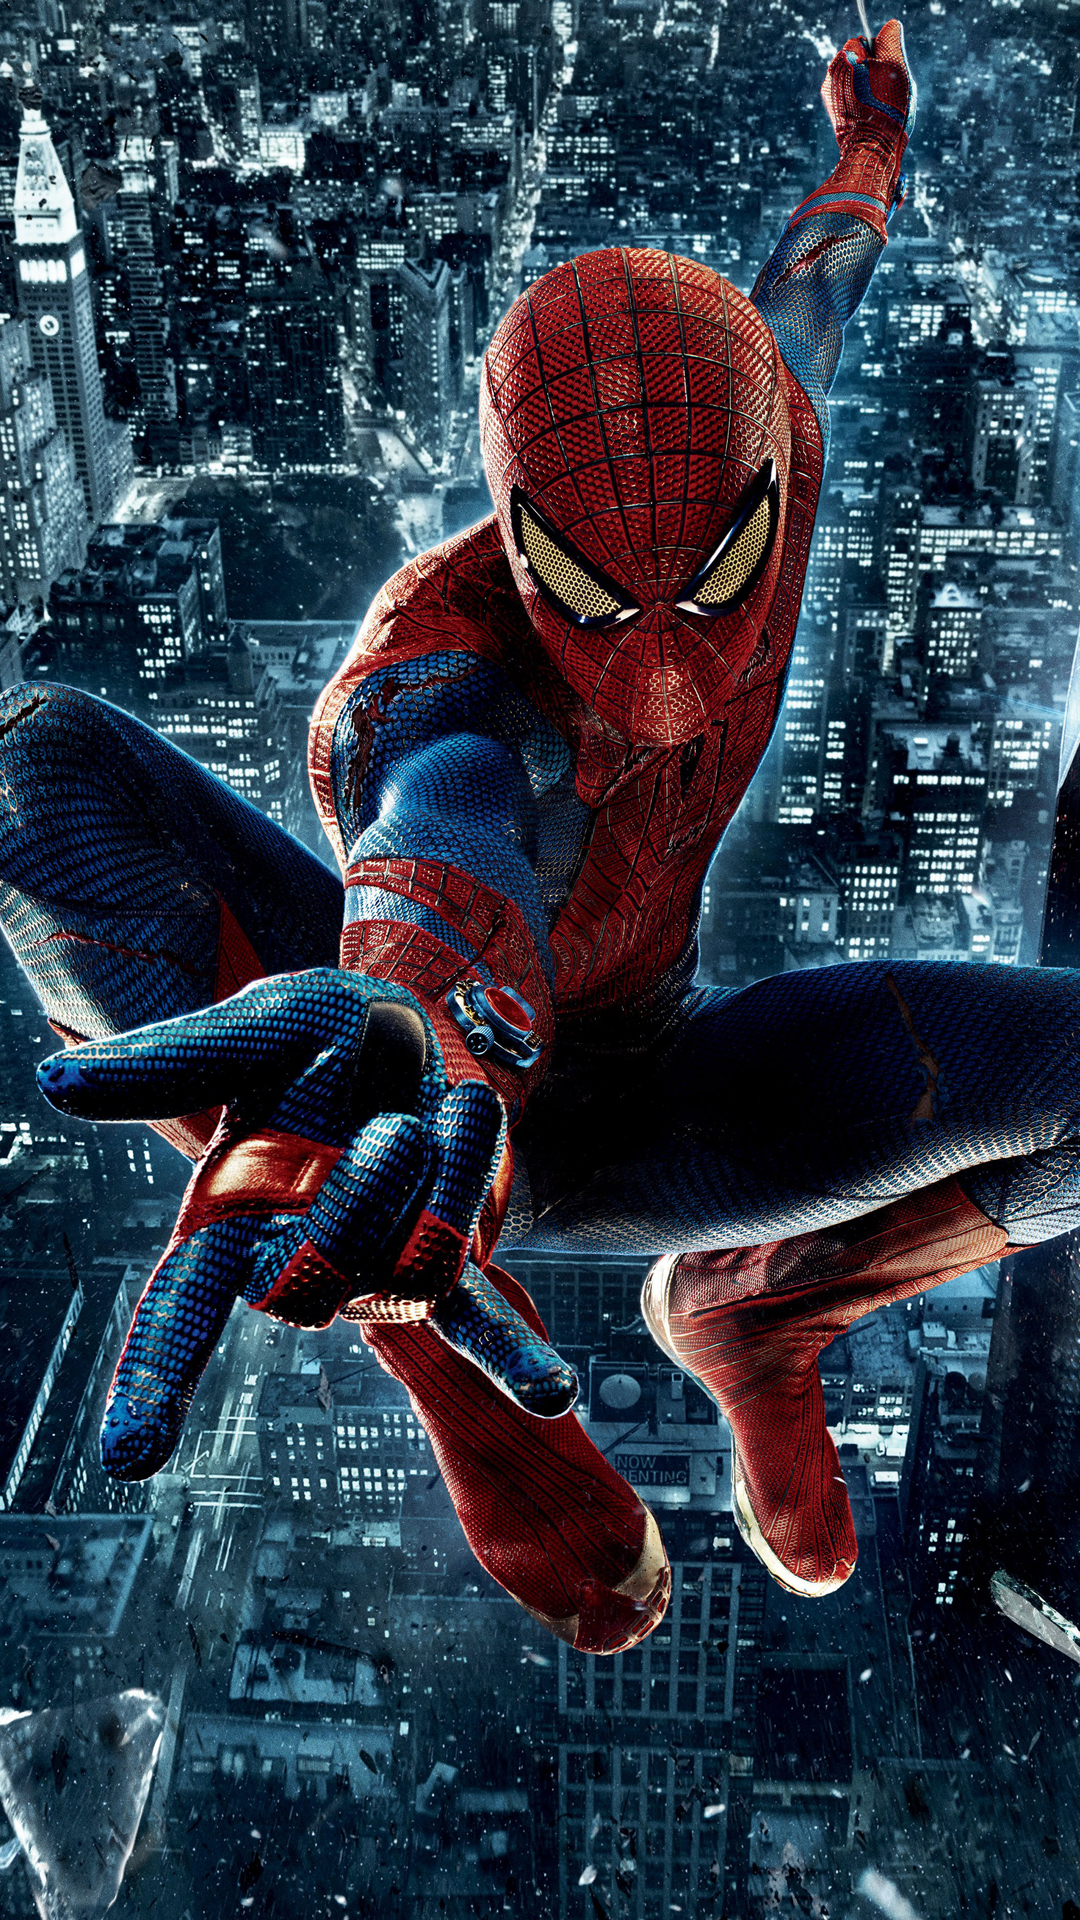 Spiderman htc one wallpaper - Best htc one wallpapers ...